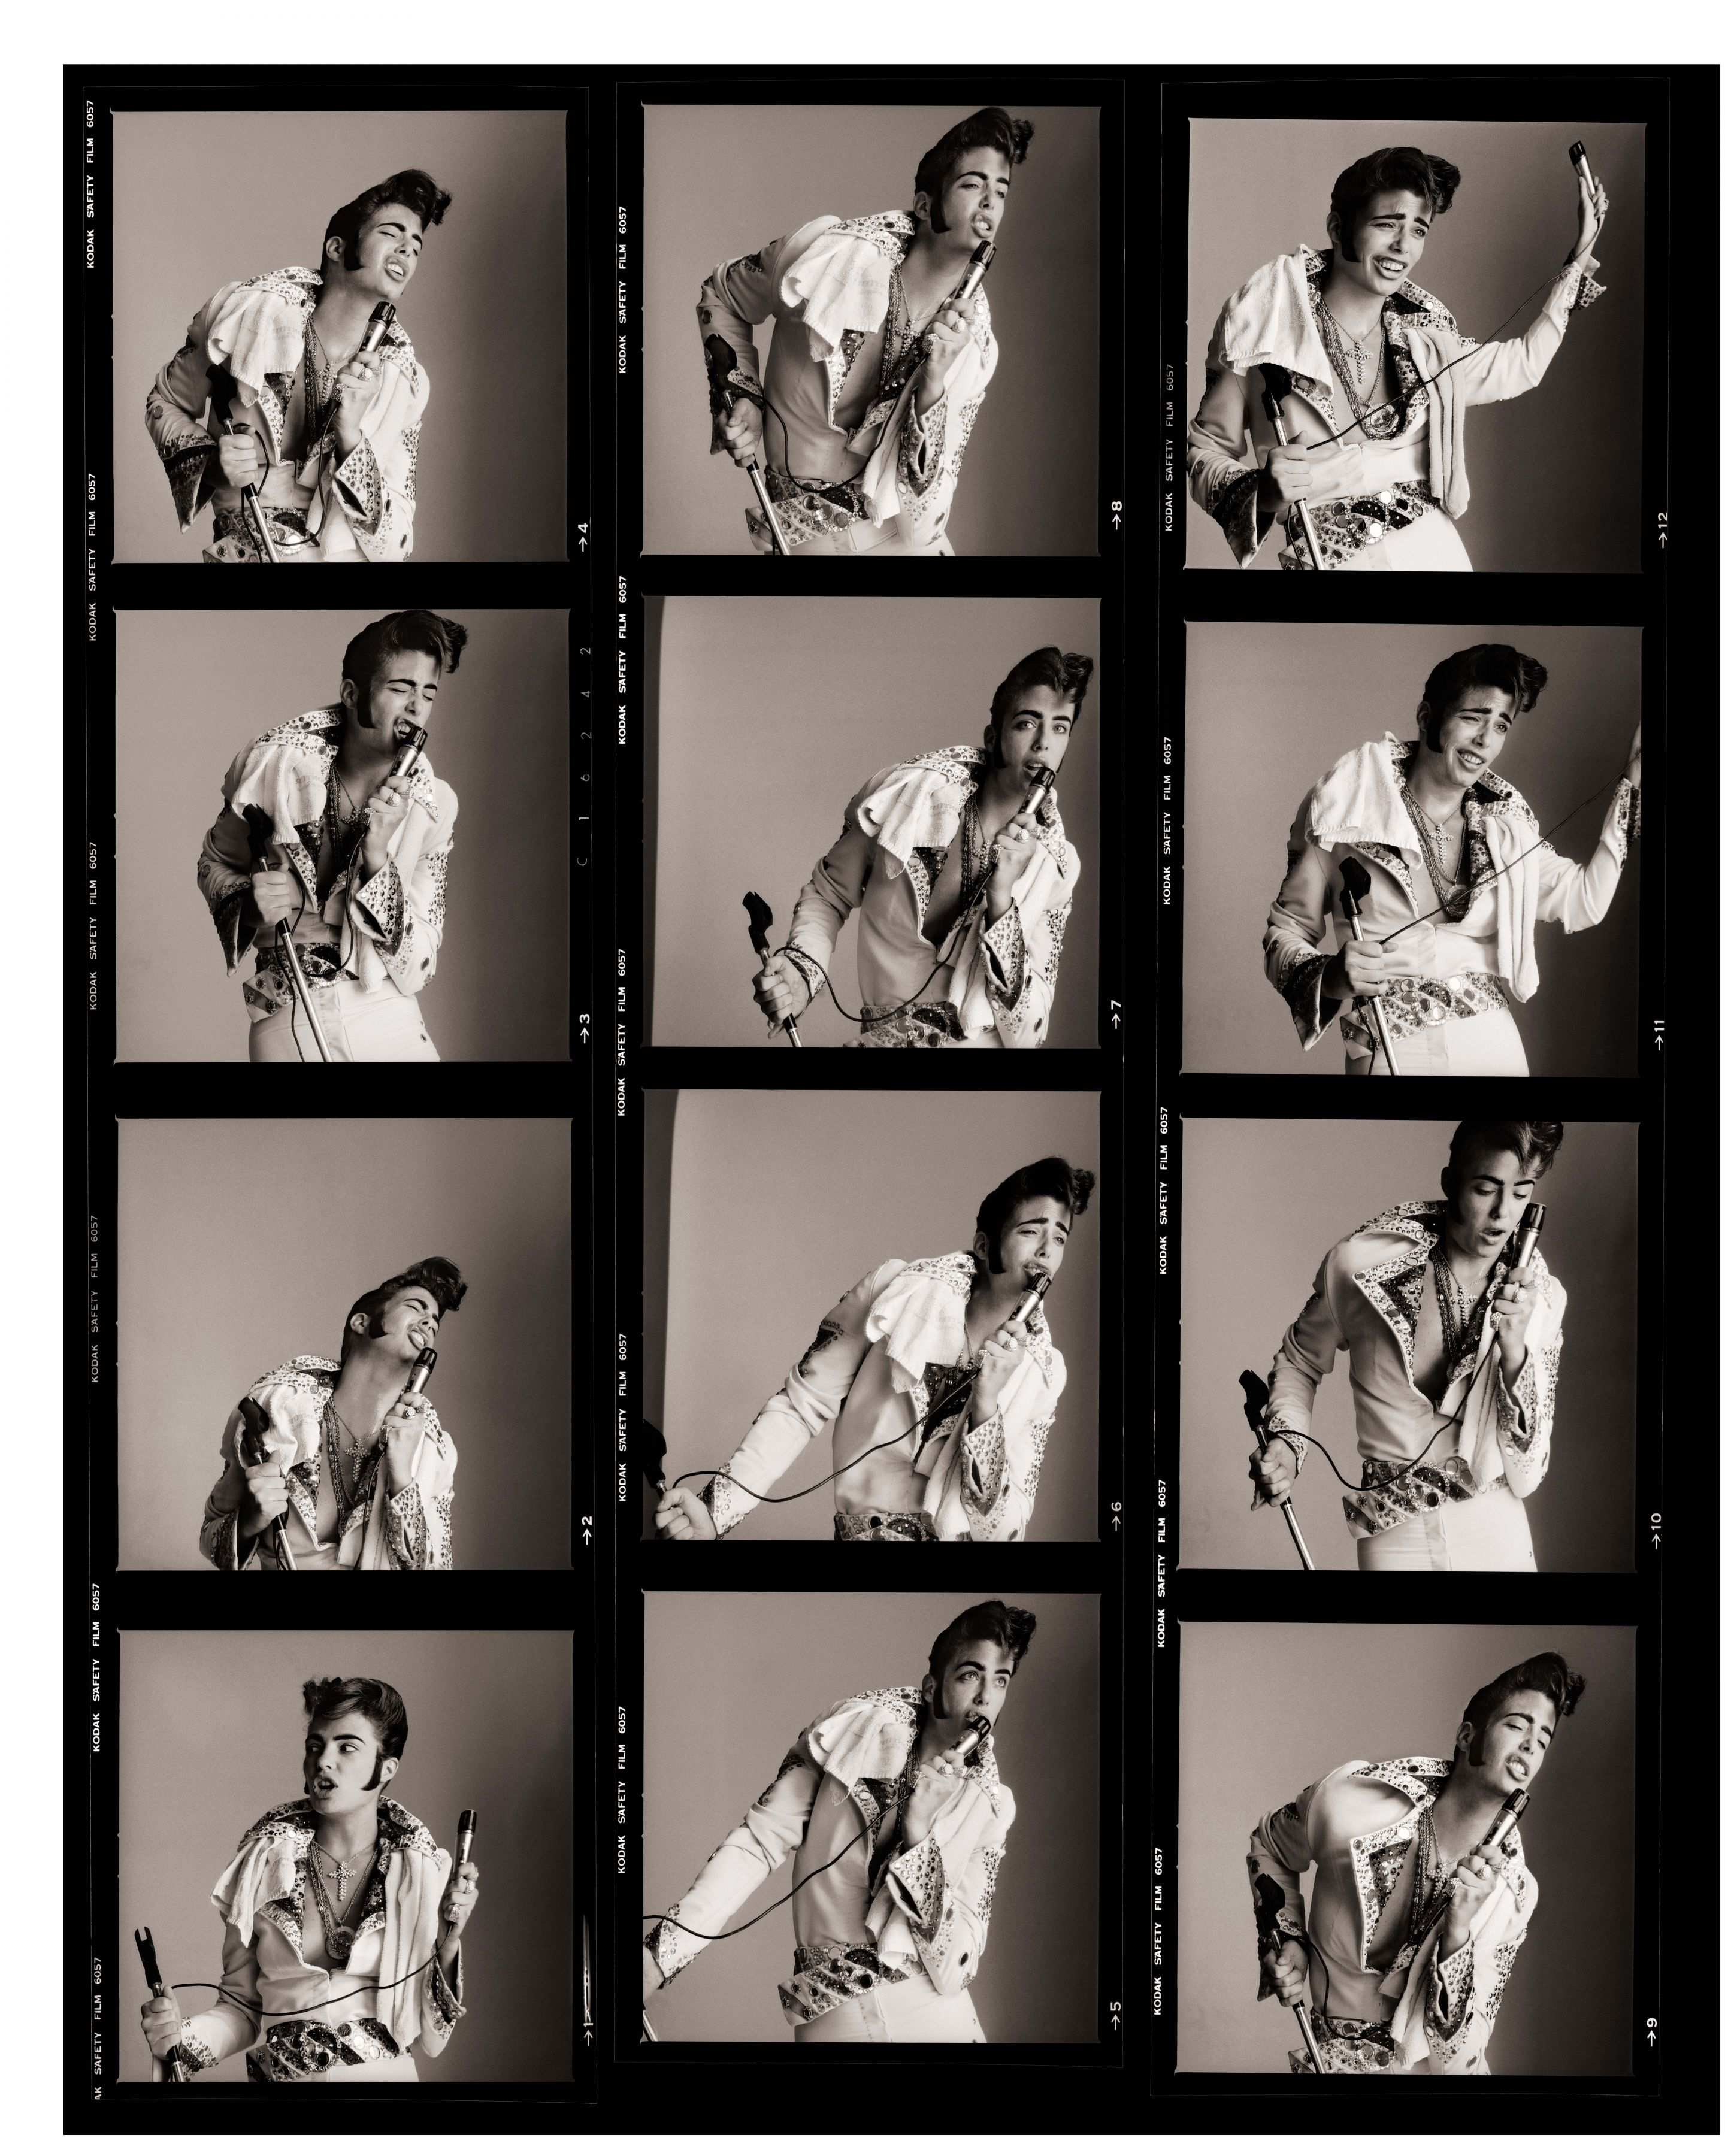 Kelly LeBrock as Greed (Proof Sheet) - The Seven Deadly Sins, Series, Los Angeles, 1985, Archival Pigment Print